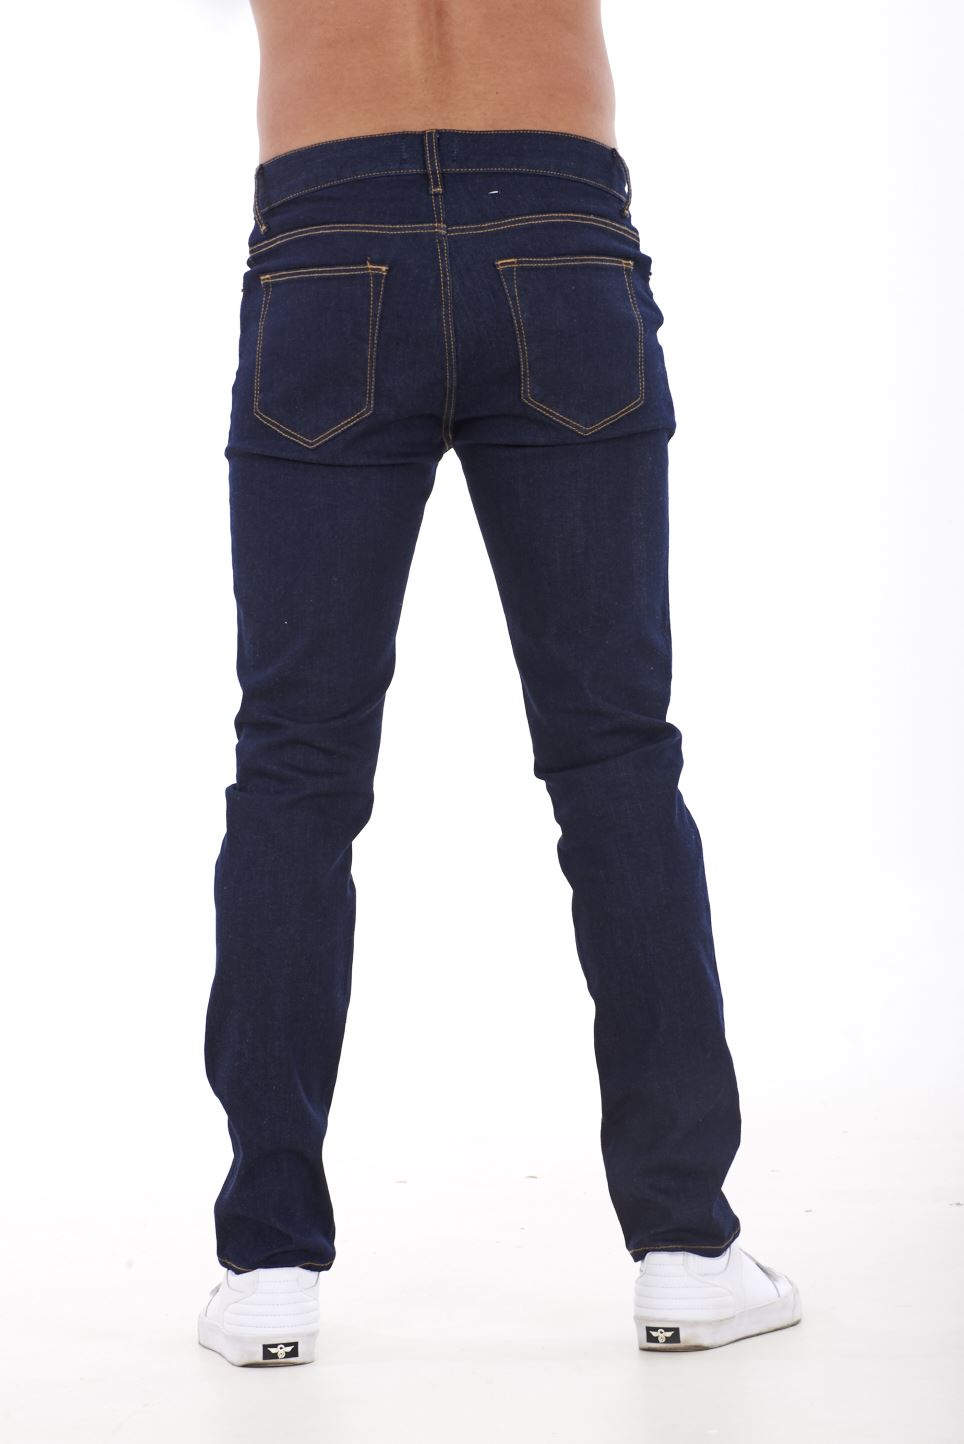 New Mens Boys Slim Fit Stretch Quality Jeans Regular Smart Branded Trouser 30-42